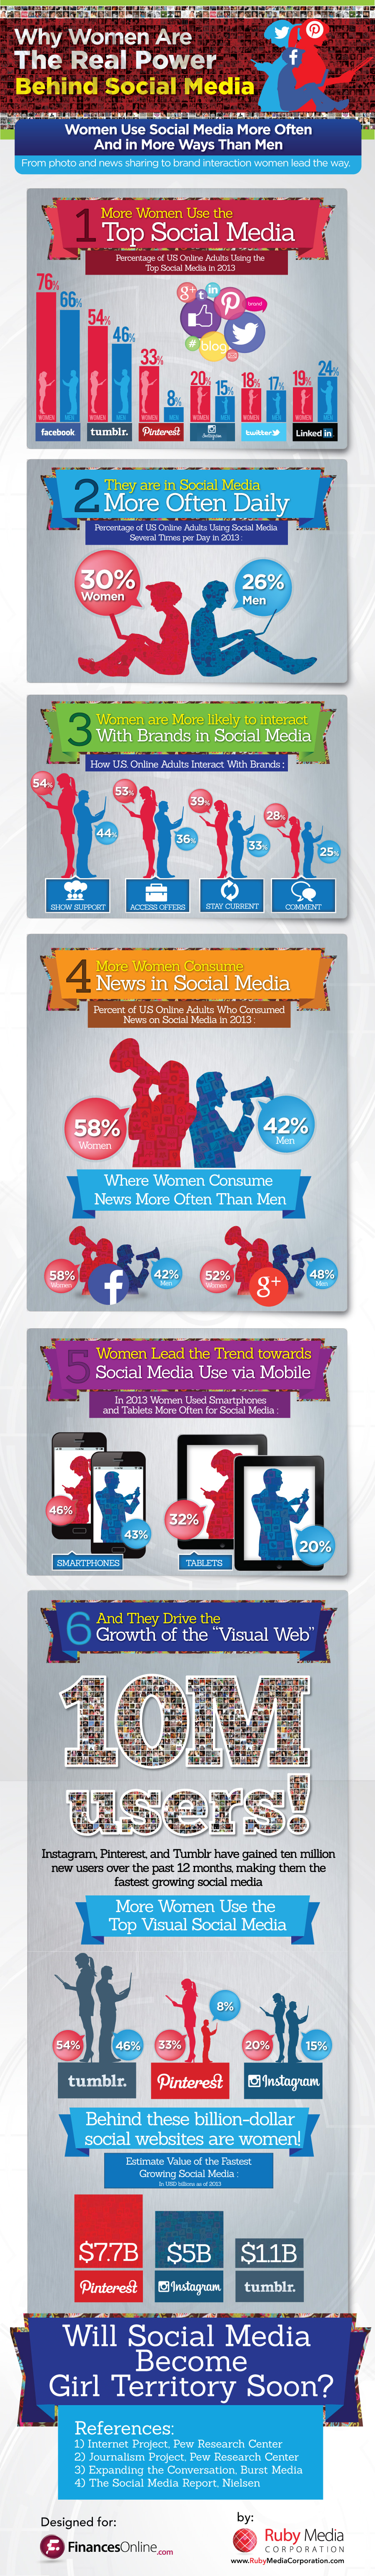 Why Women Are The Real Power Behind Top Social Media Sites Such As Twitter or Instagram